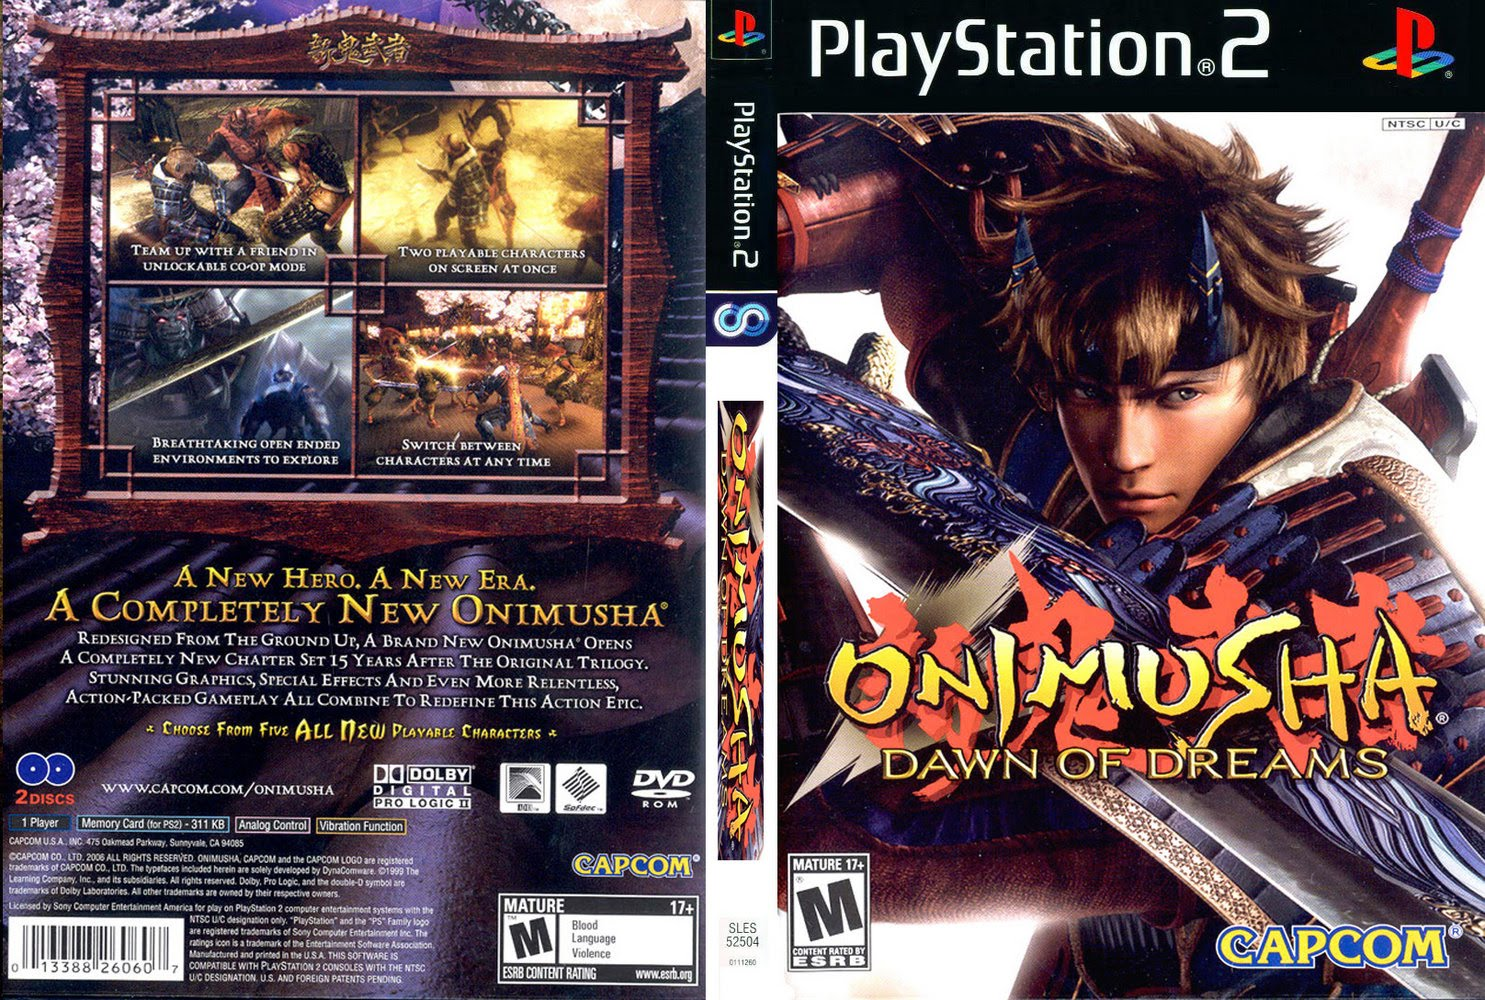 Download onimusha 4 pc game sqlstrongdownload.